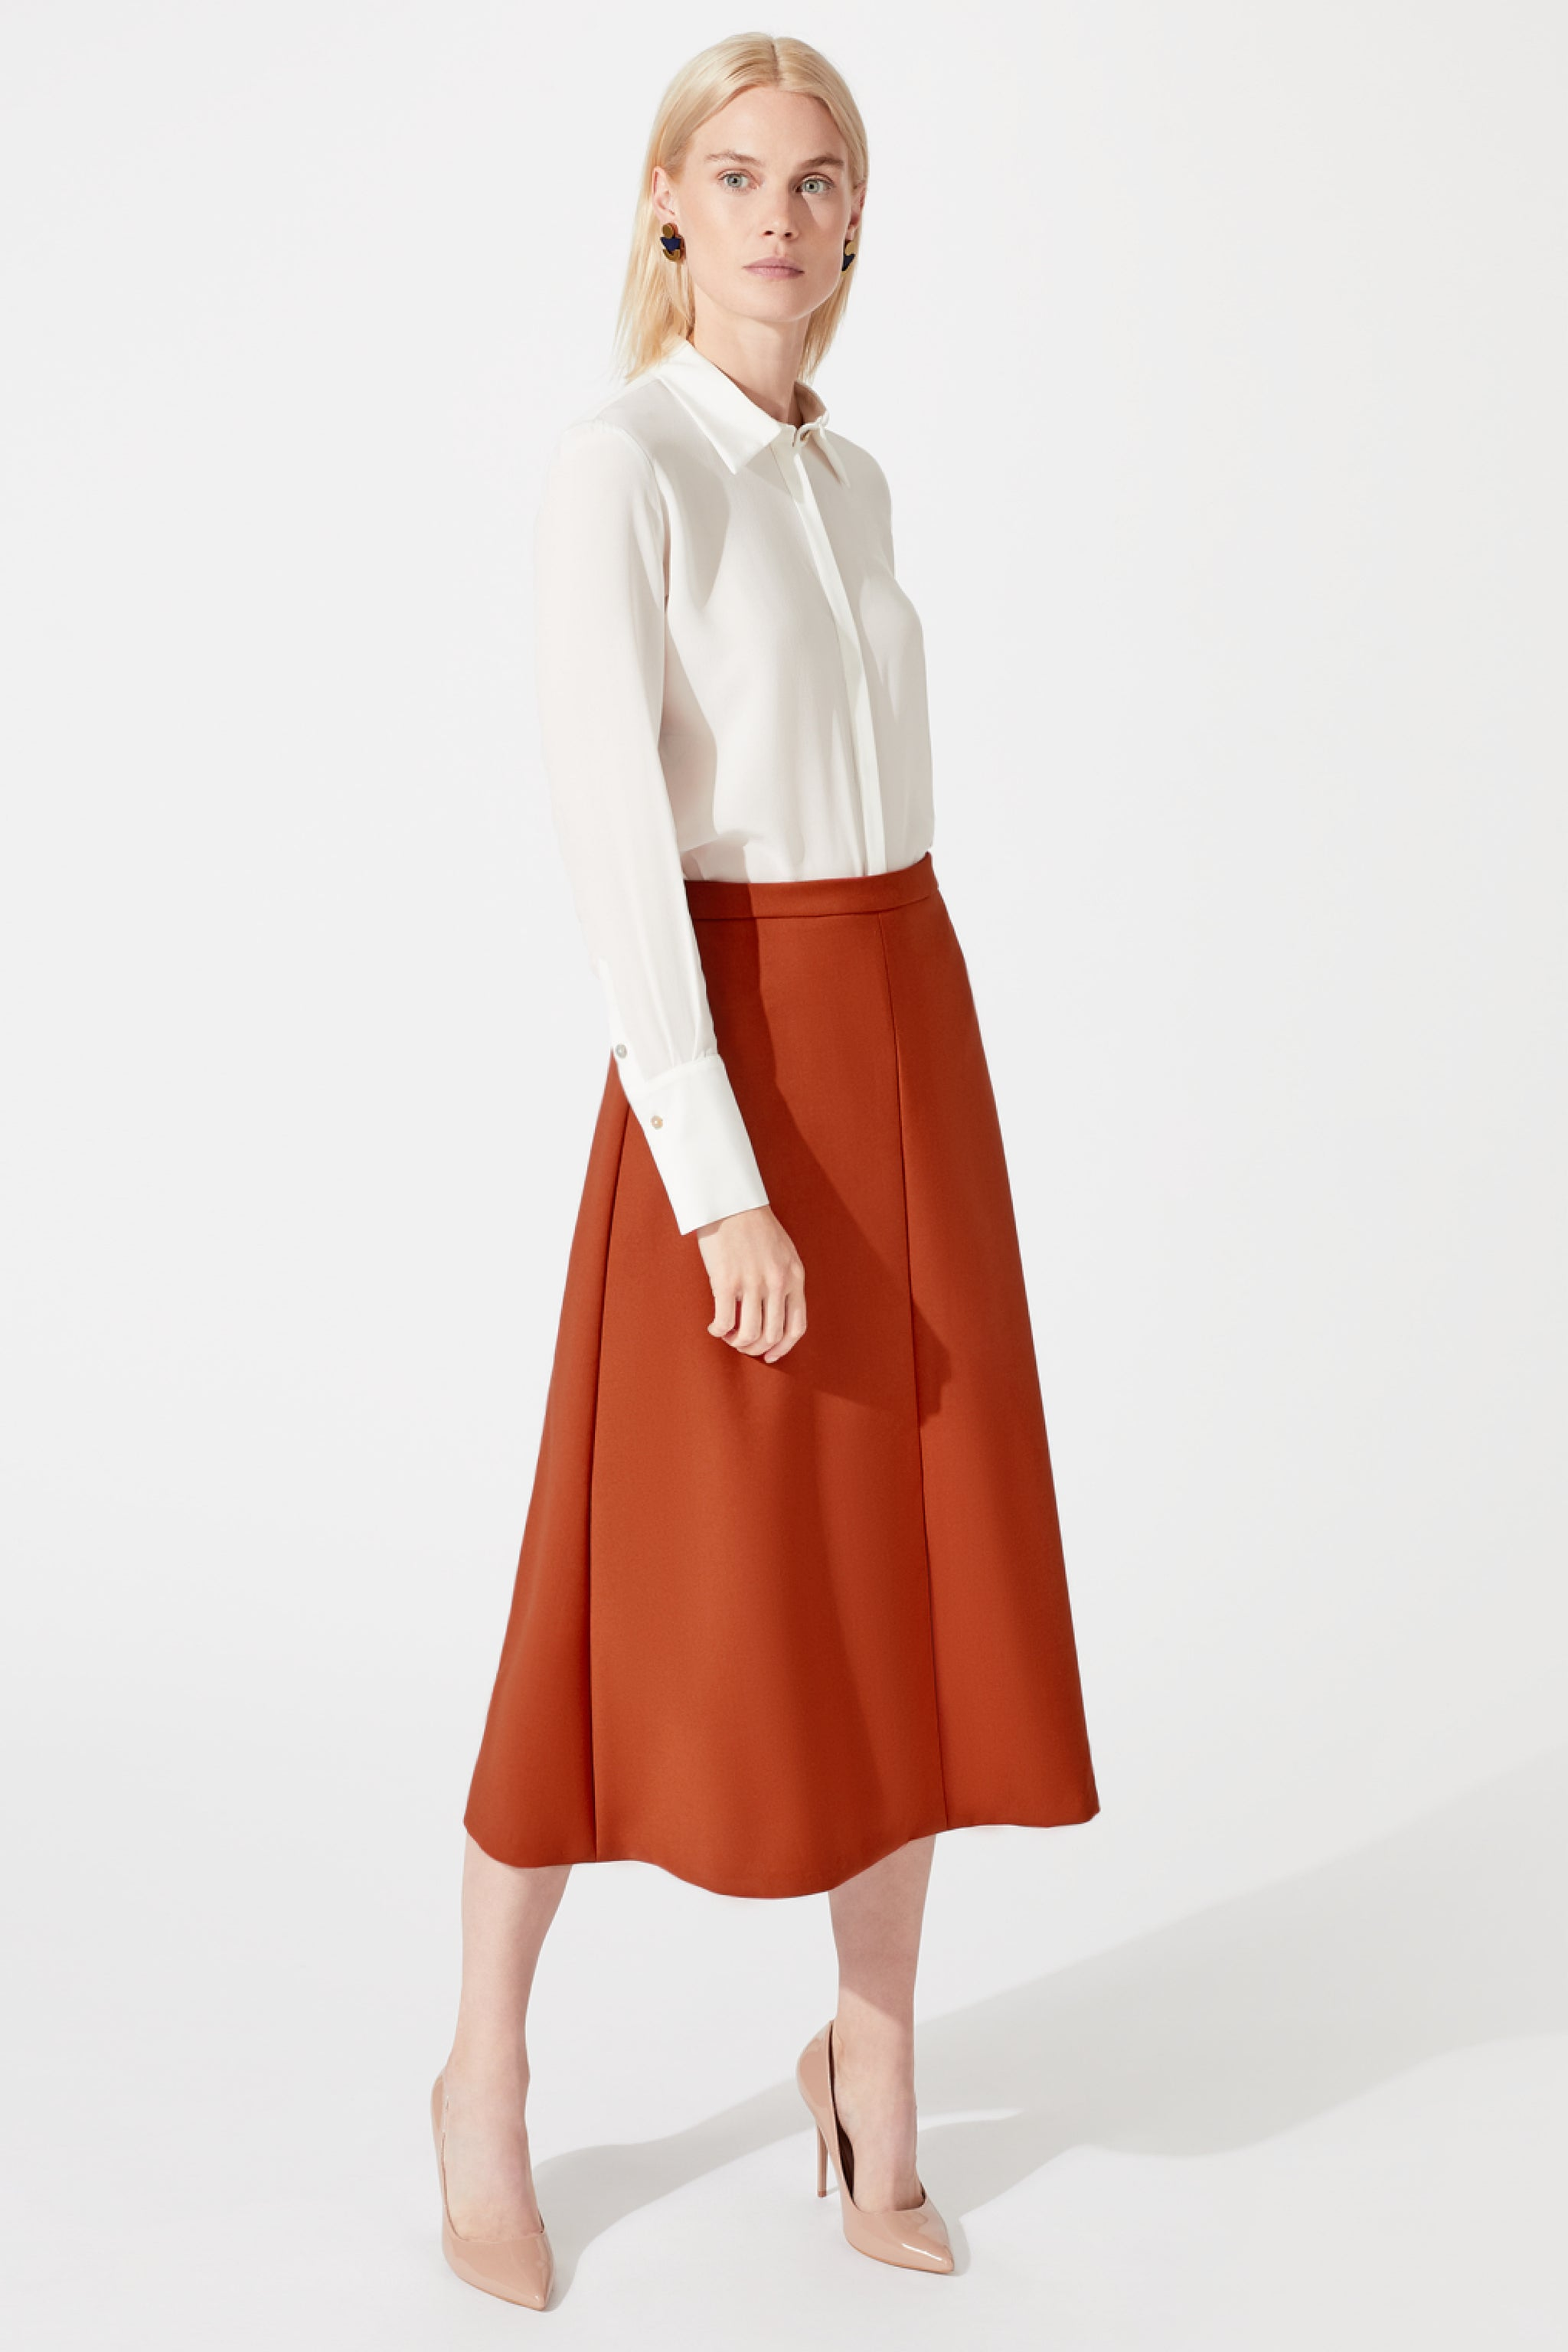 Penrith Terracotta Skirt